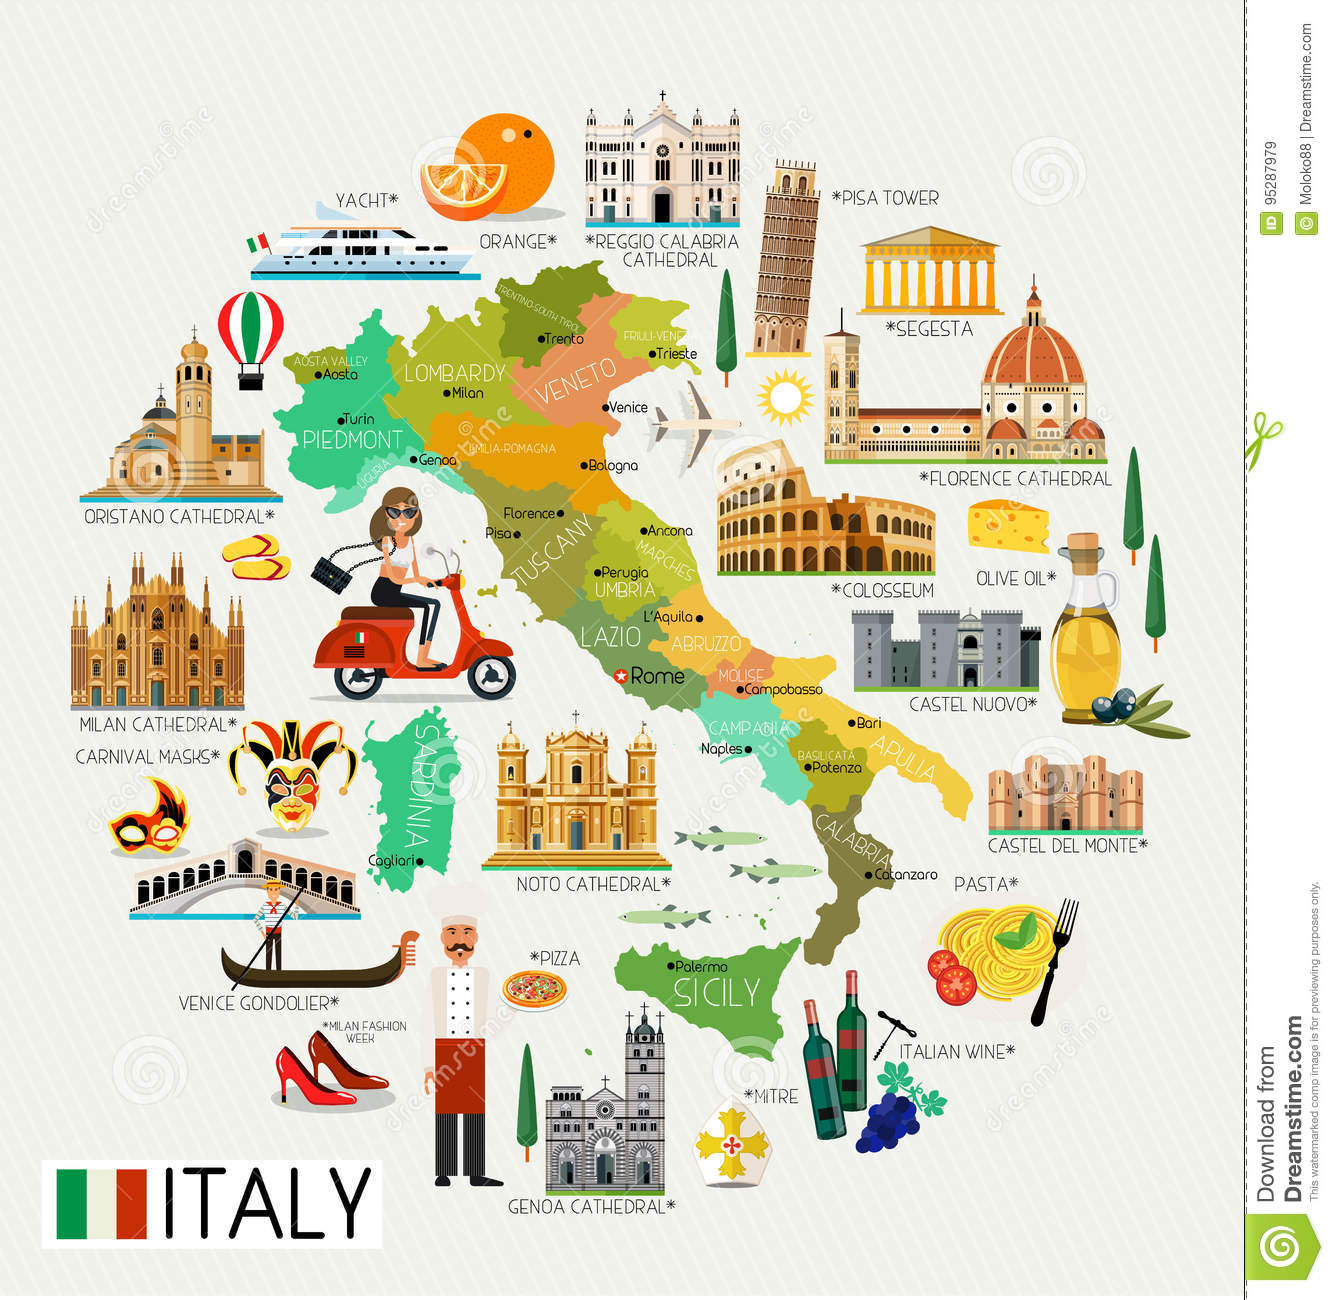 Italy Travel Map. stock vector. Illustration of naples ... on tourist map of sicily italy, tourist map of amalfi italy, tourist map of cannes france, tourist map of perth australia, tourist map of nairobi, tourist map of bahrain, tourist map of lyon france, tourist map of venice italy, tourist map of santorini greece, tourist map of sorrento italy, tourist map of malaga spain, tourist map of siena italy, tourist map of milan italy, tourist map of delhi india, tourist map of rio de janeiro brazil, tourist map of buenos aires argentina, tourist map of kuwait, tourist map of villefranche france, tourist map of warsaw poland, tourist map of rome italy,